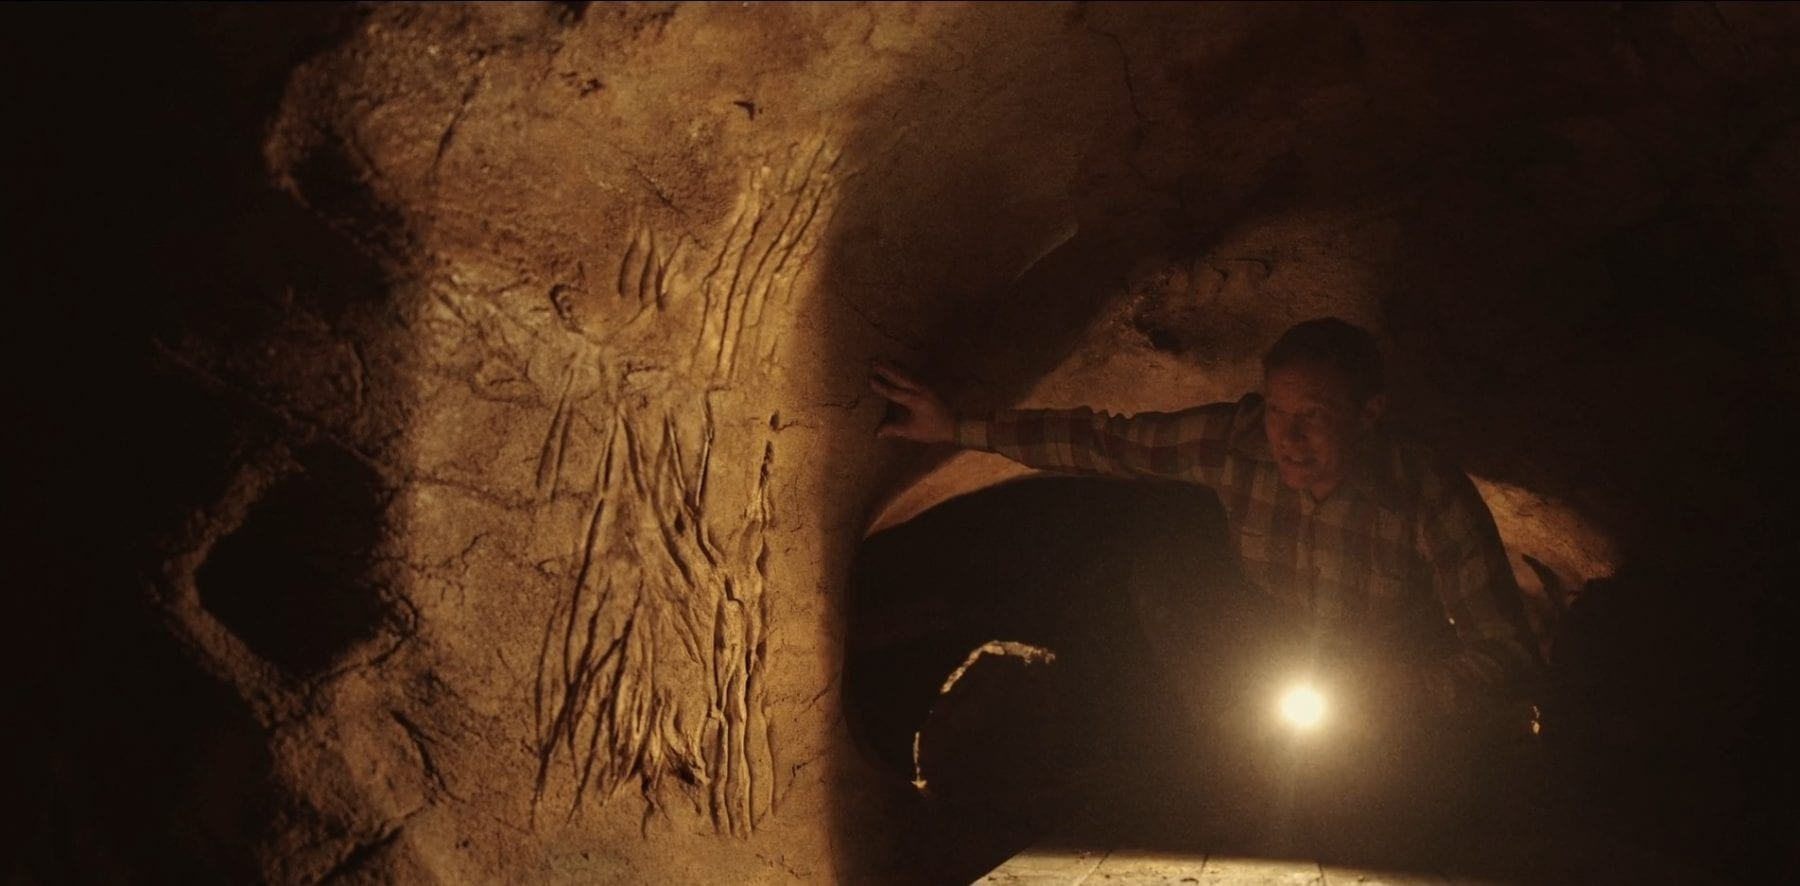 Emmitt Weaver holding a flashlight in the cave, with scratches on the cave wall